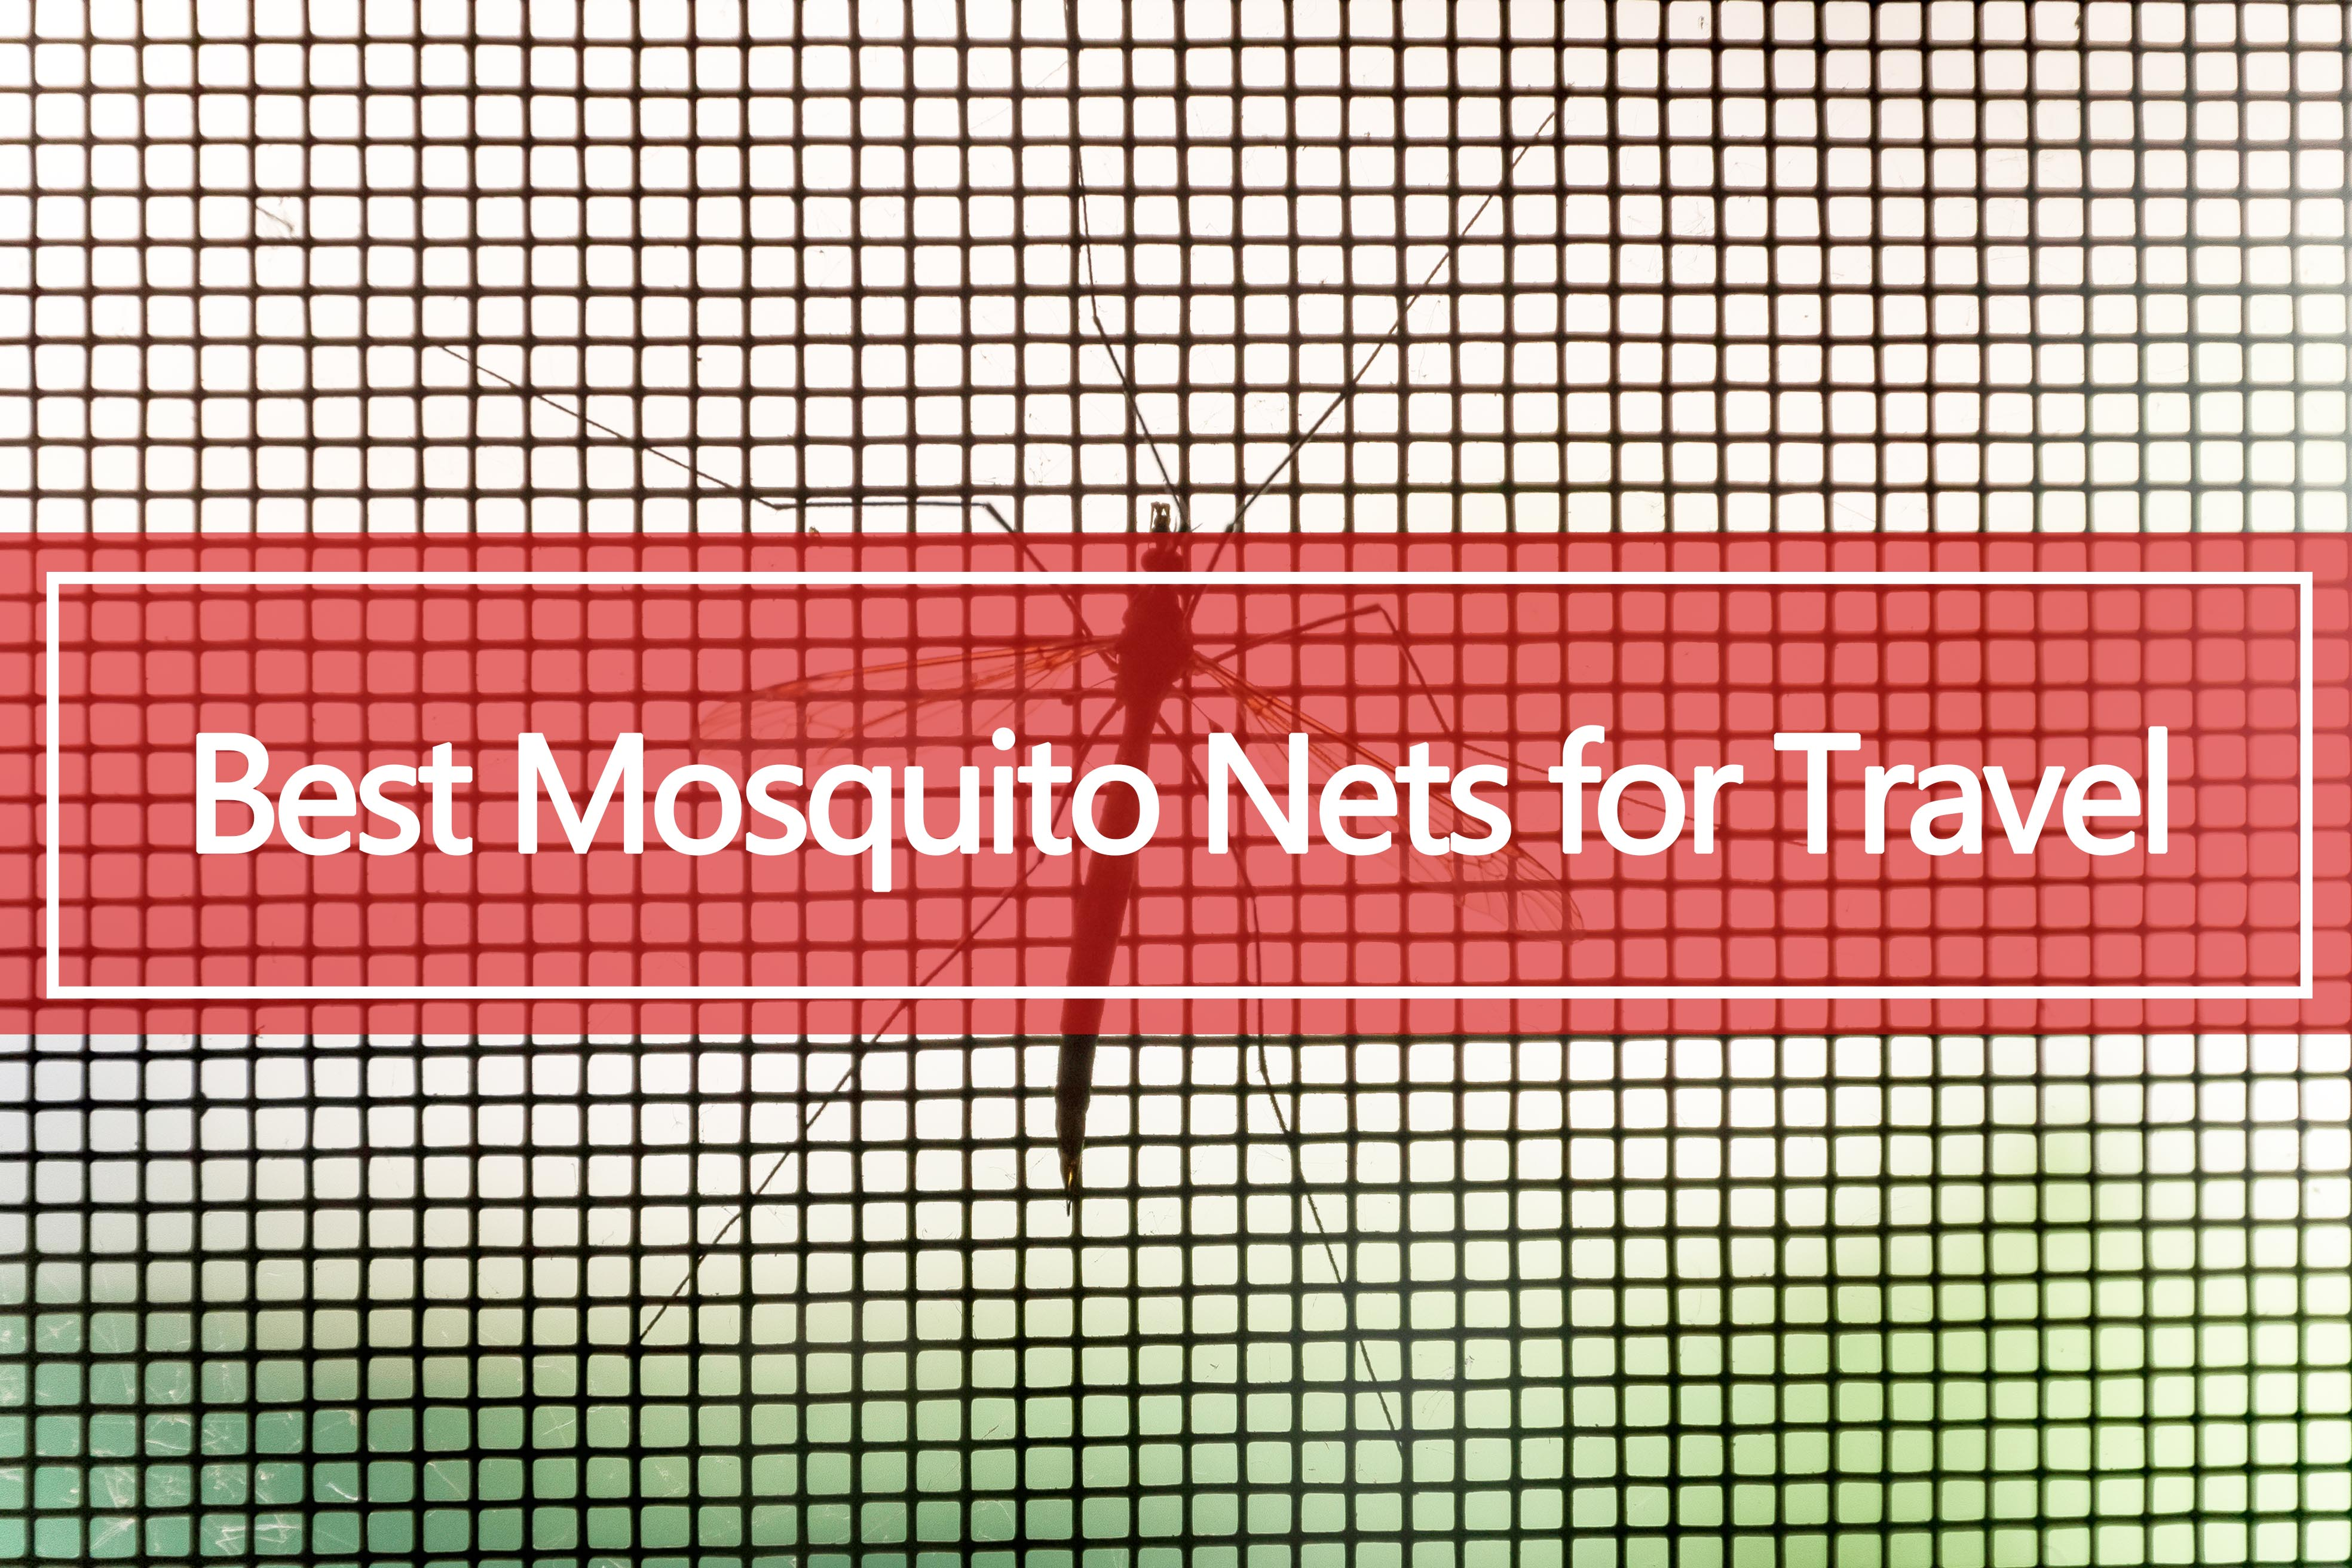 7 Best Mosquito Nets for Travel